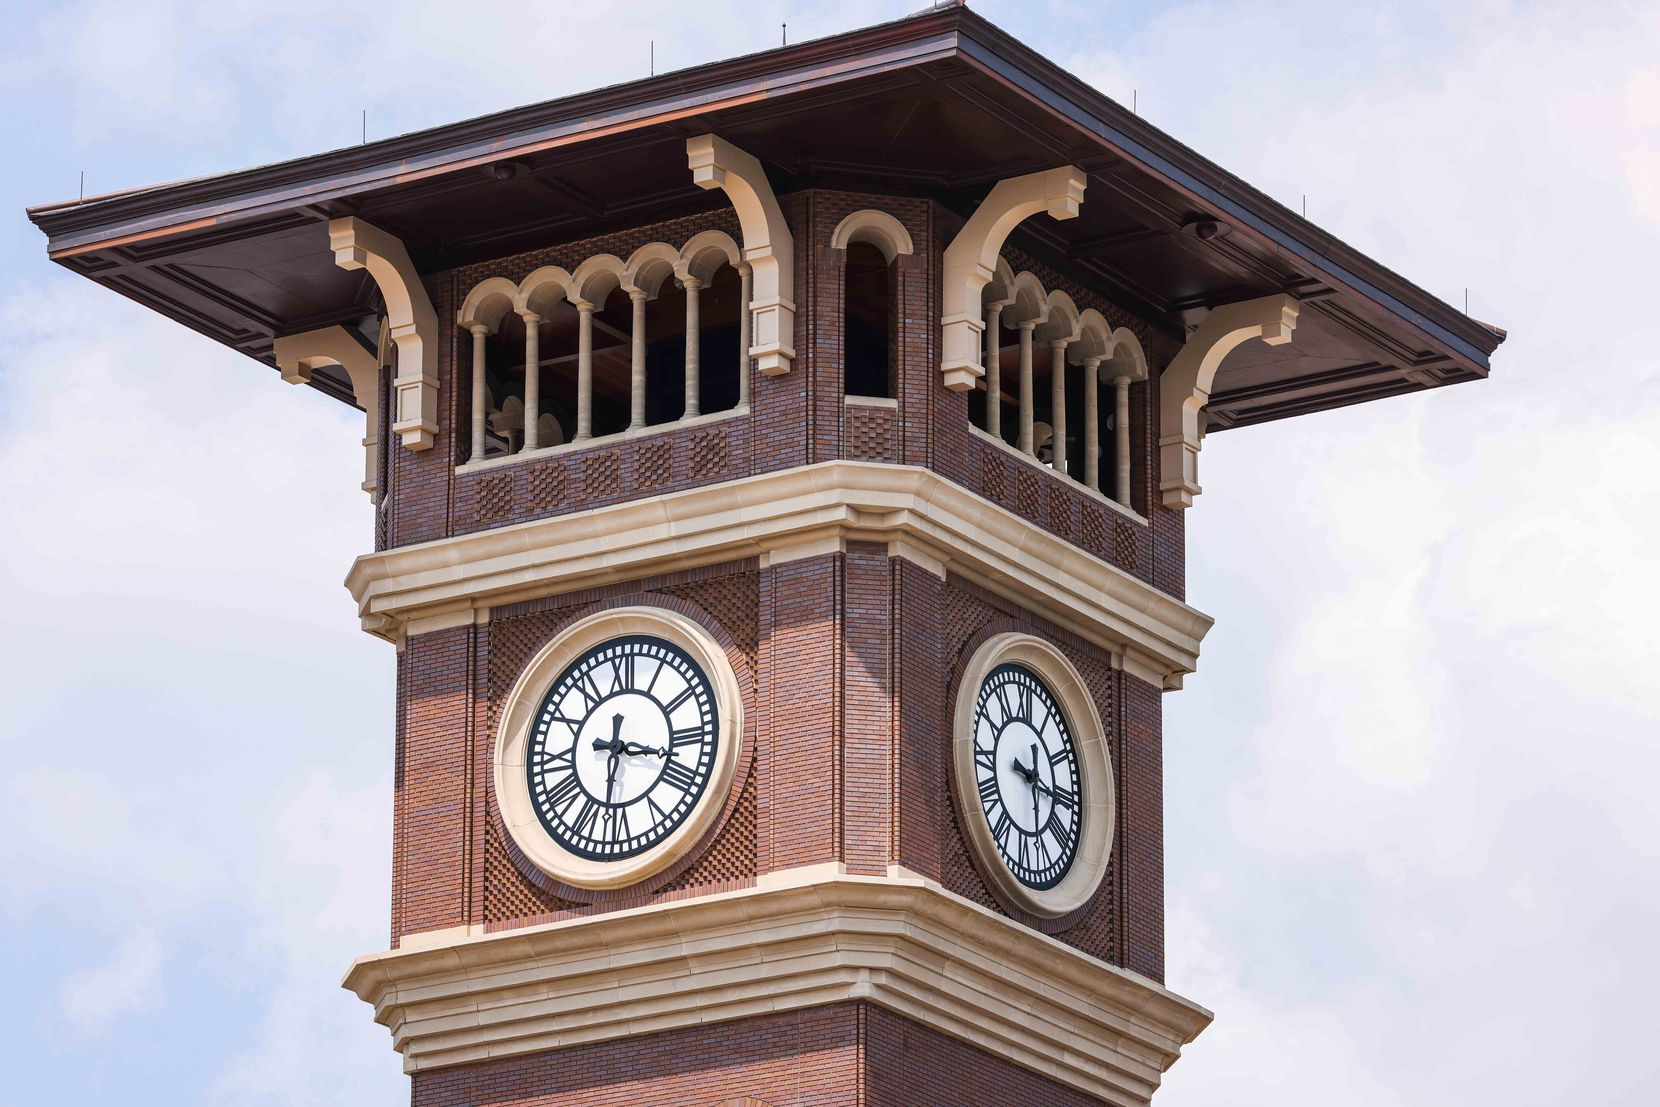 The clock tower at Grapevine Main